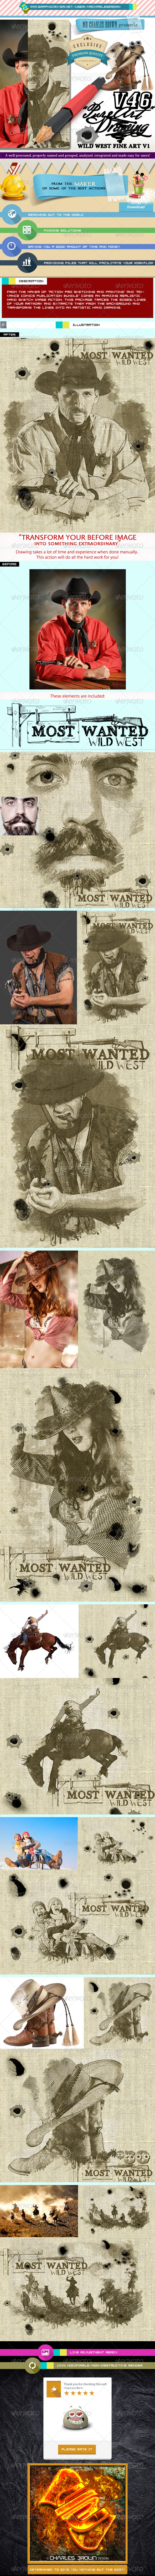 GraphicRiver Pure Art Hand Drawing 46 Wild West Fine Art v1 6185625